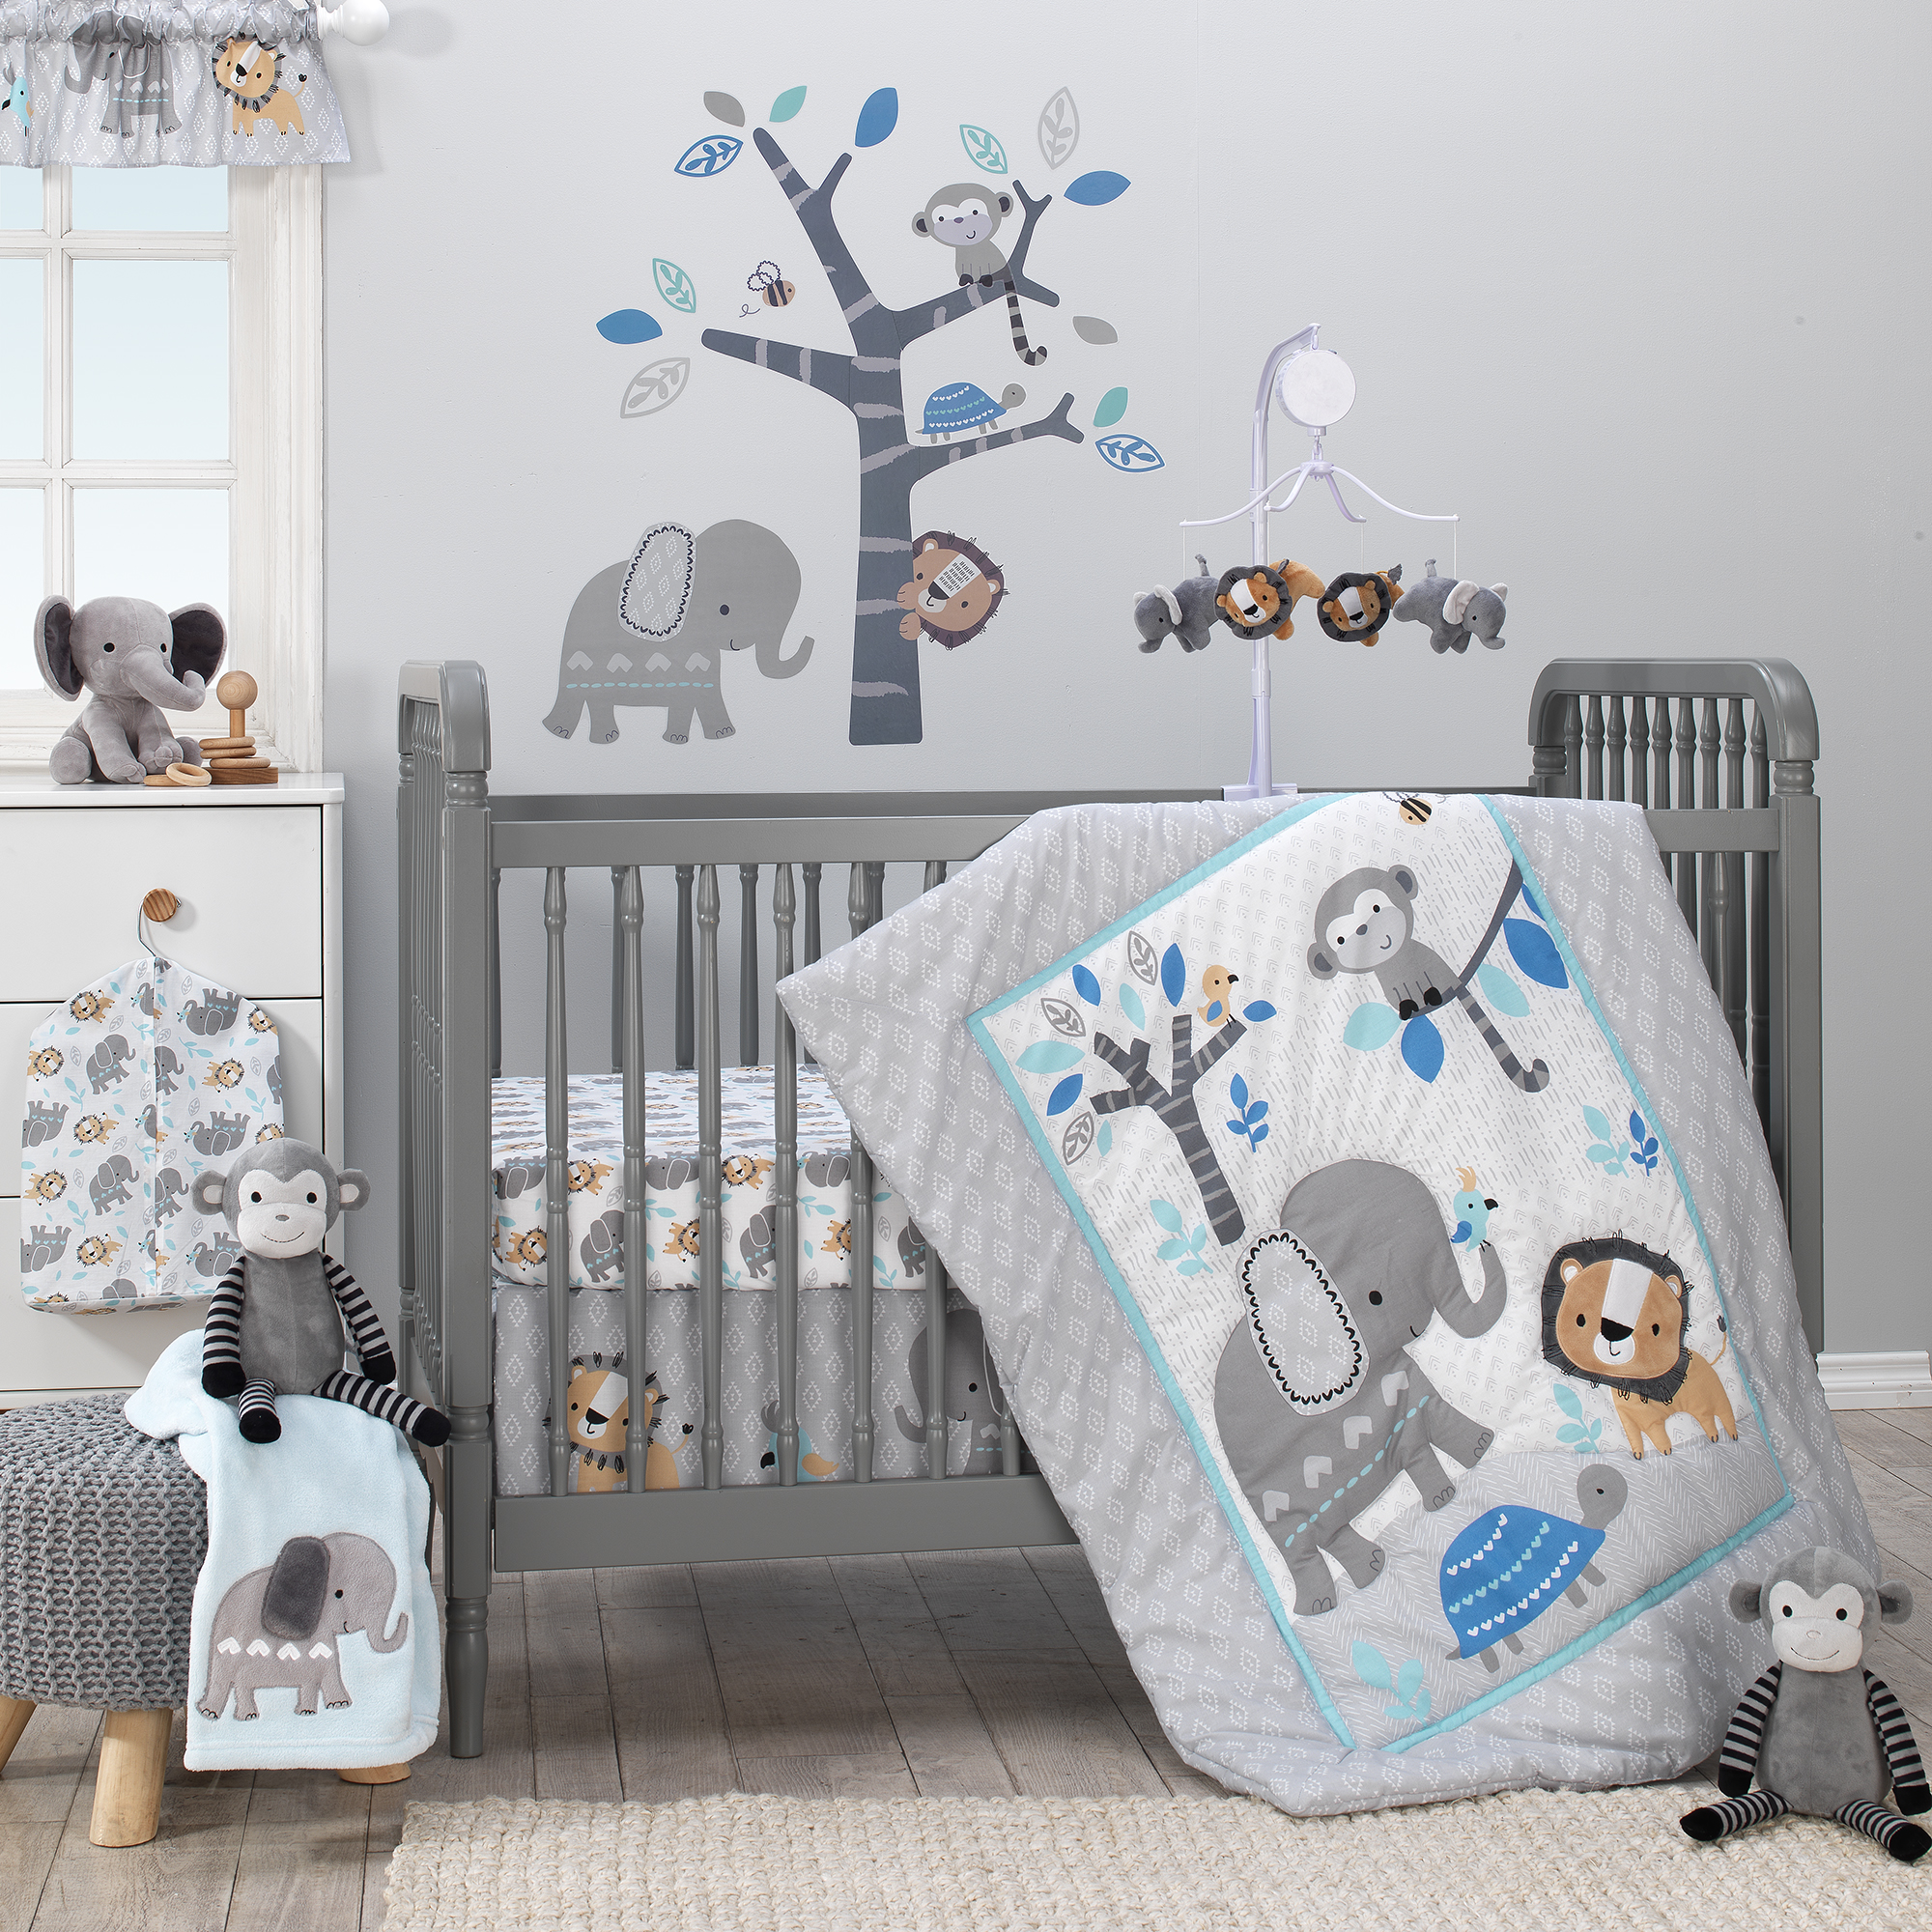 Bedtime Originals Jungle Fun 3-Piece Crib Bedding Set - Blue, Gray, White